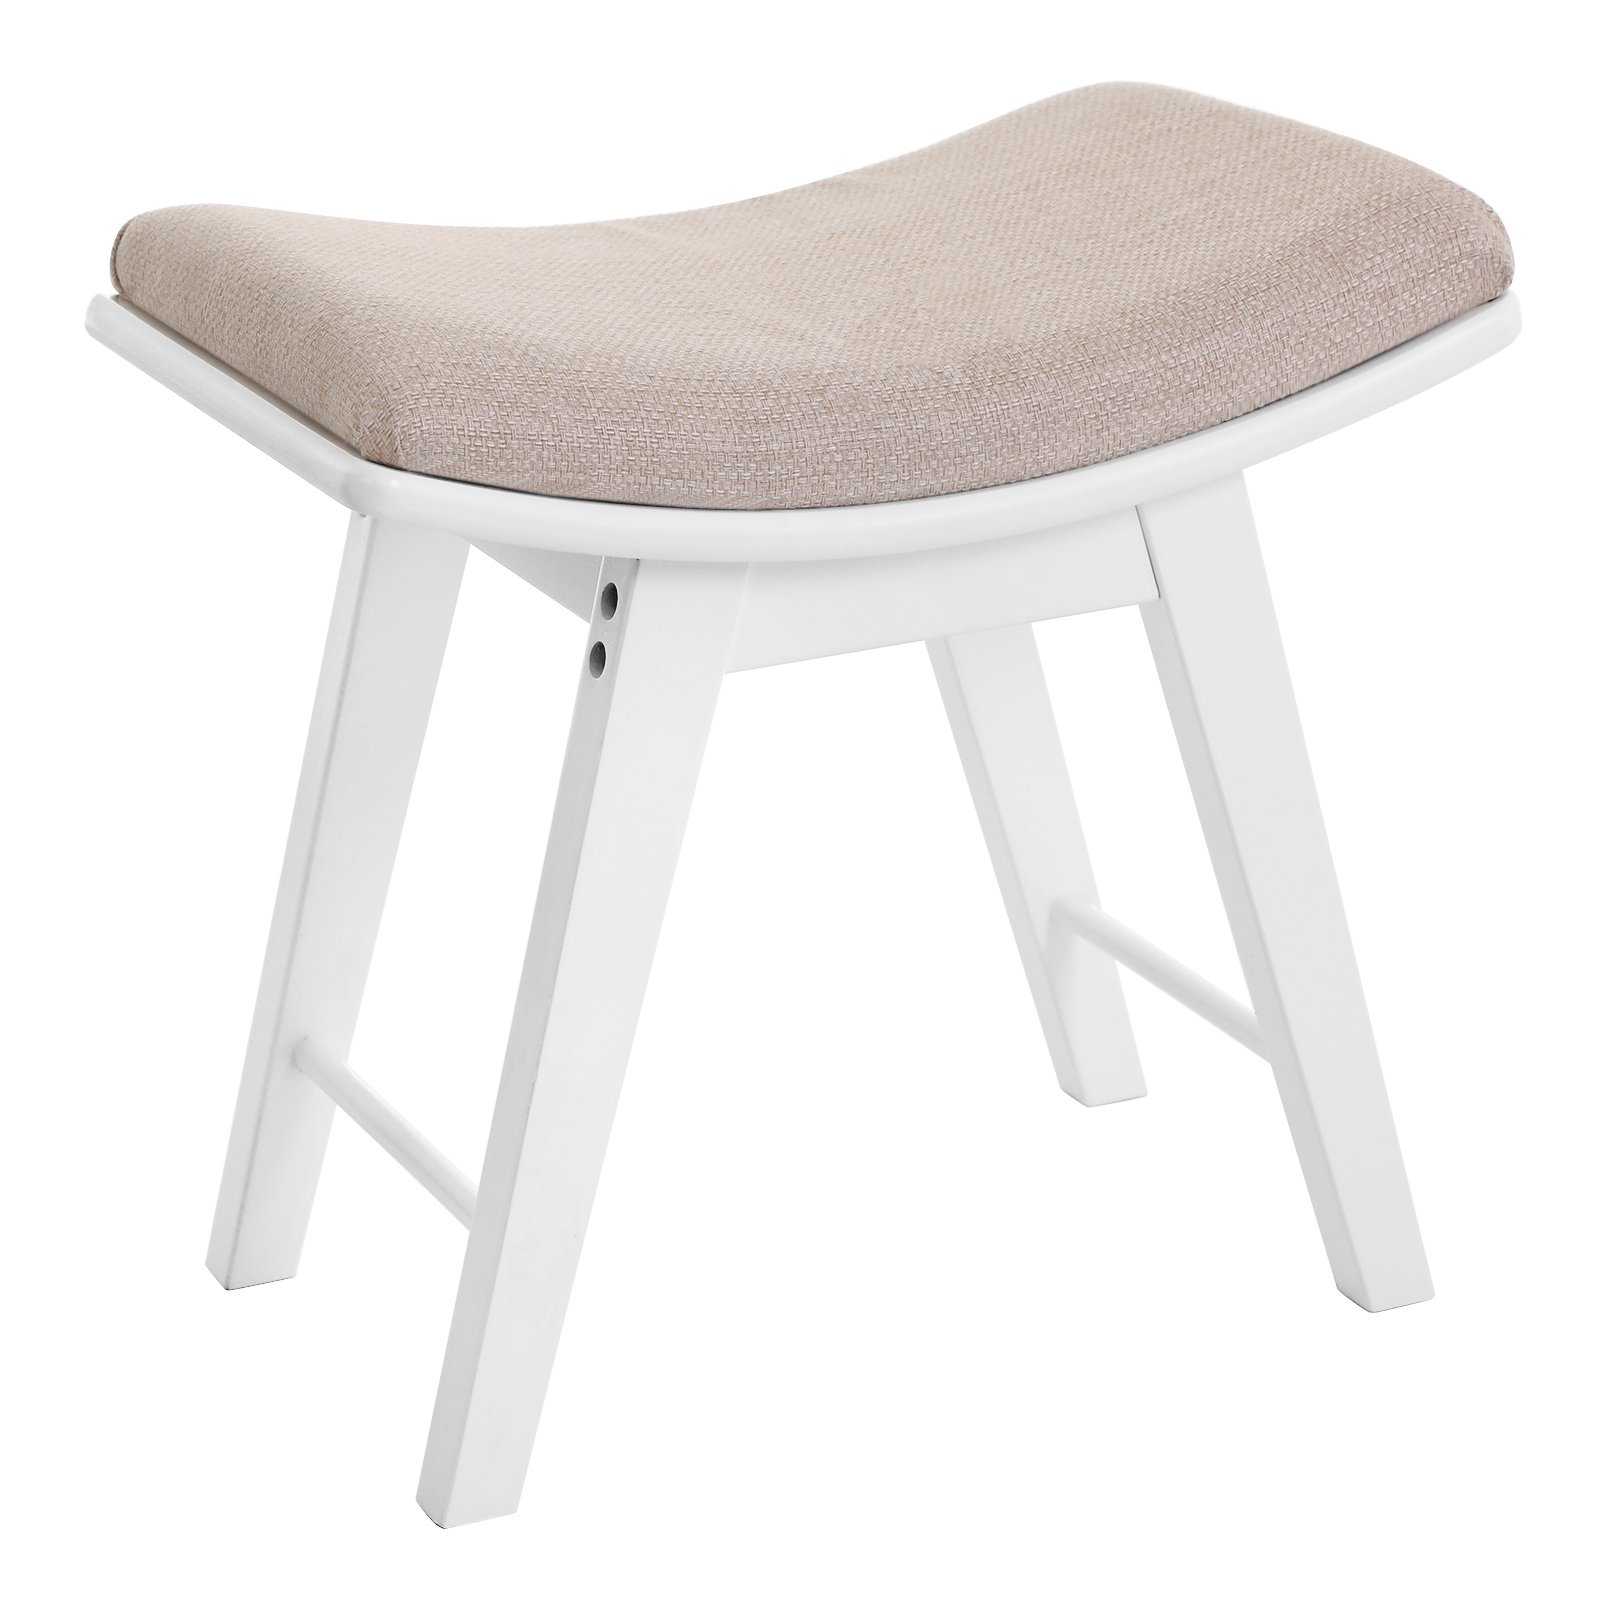 SONGMICS Vanity Seat, Modern Makeup Dressing Stool, Padded Bench with Rubberwood Legs, White URDS51W by SONGMICS